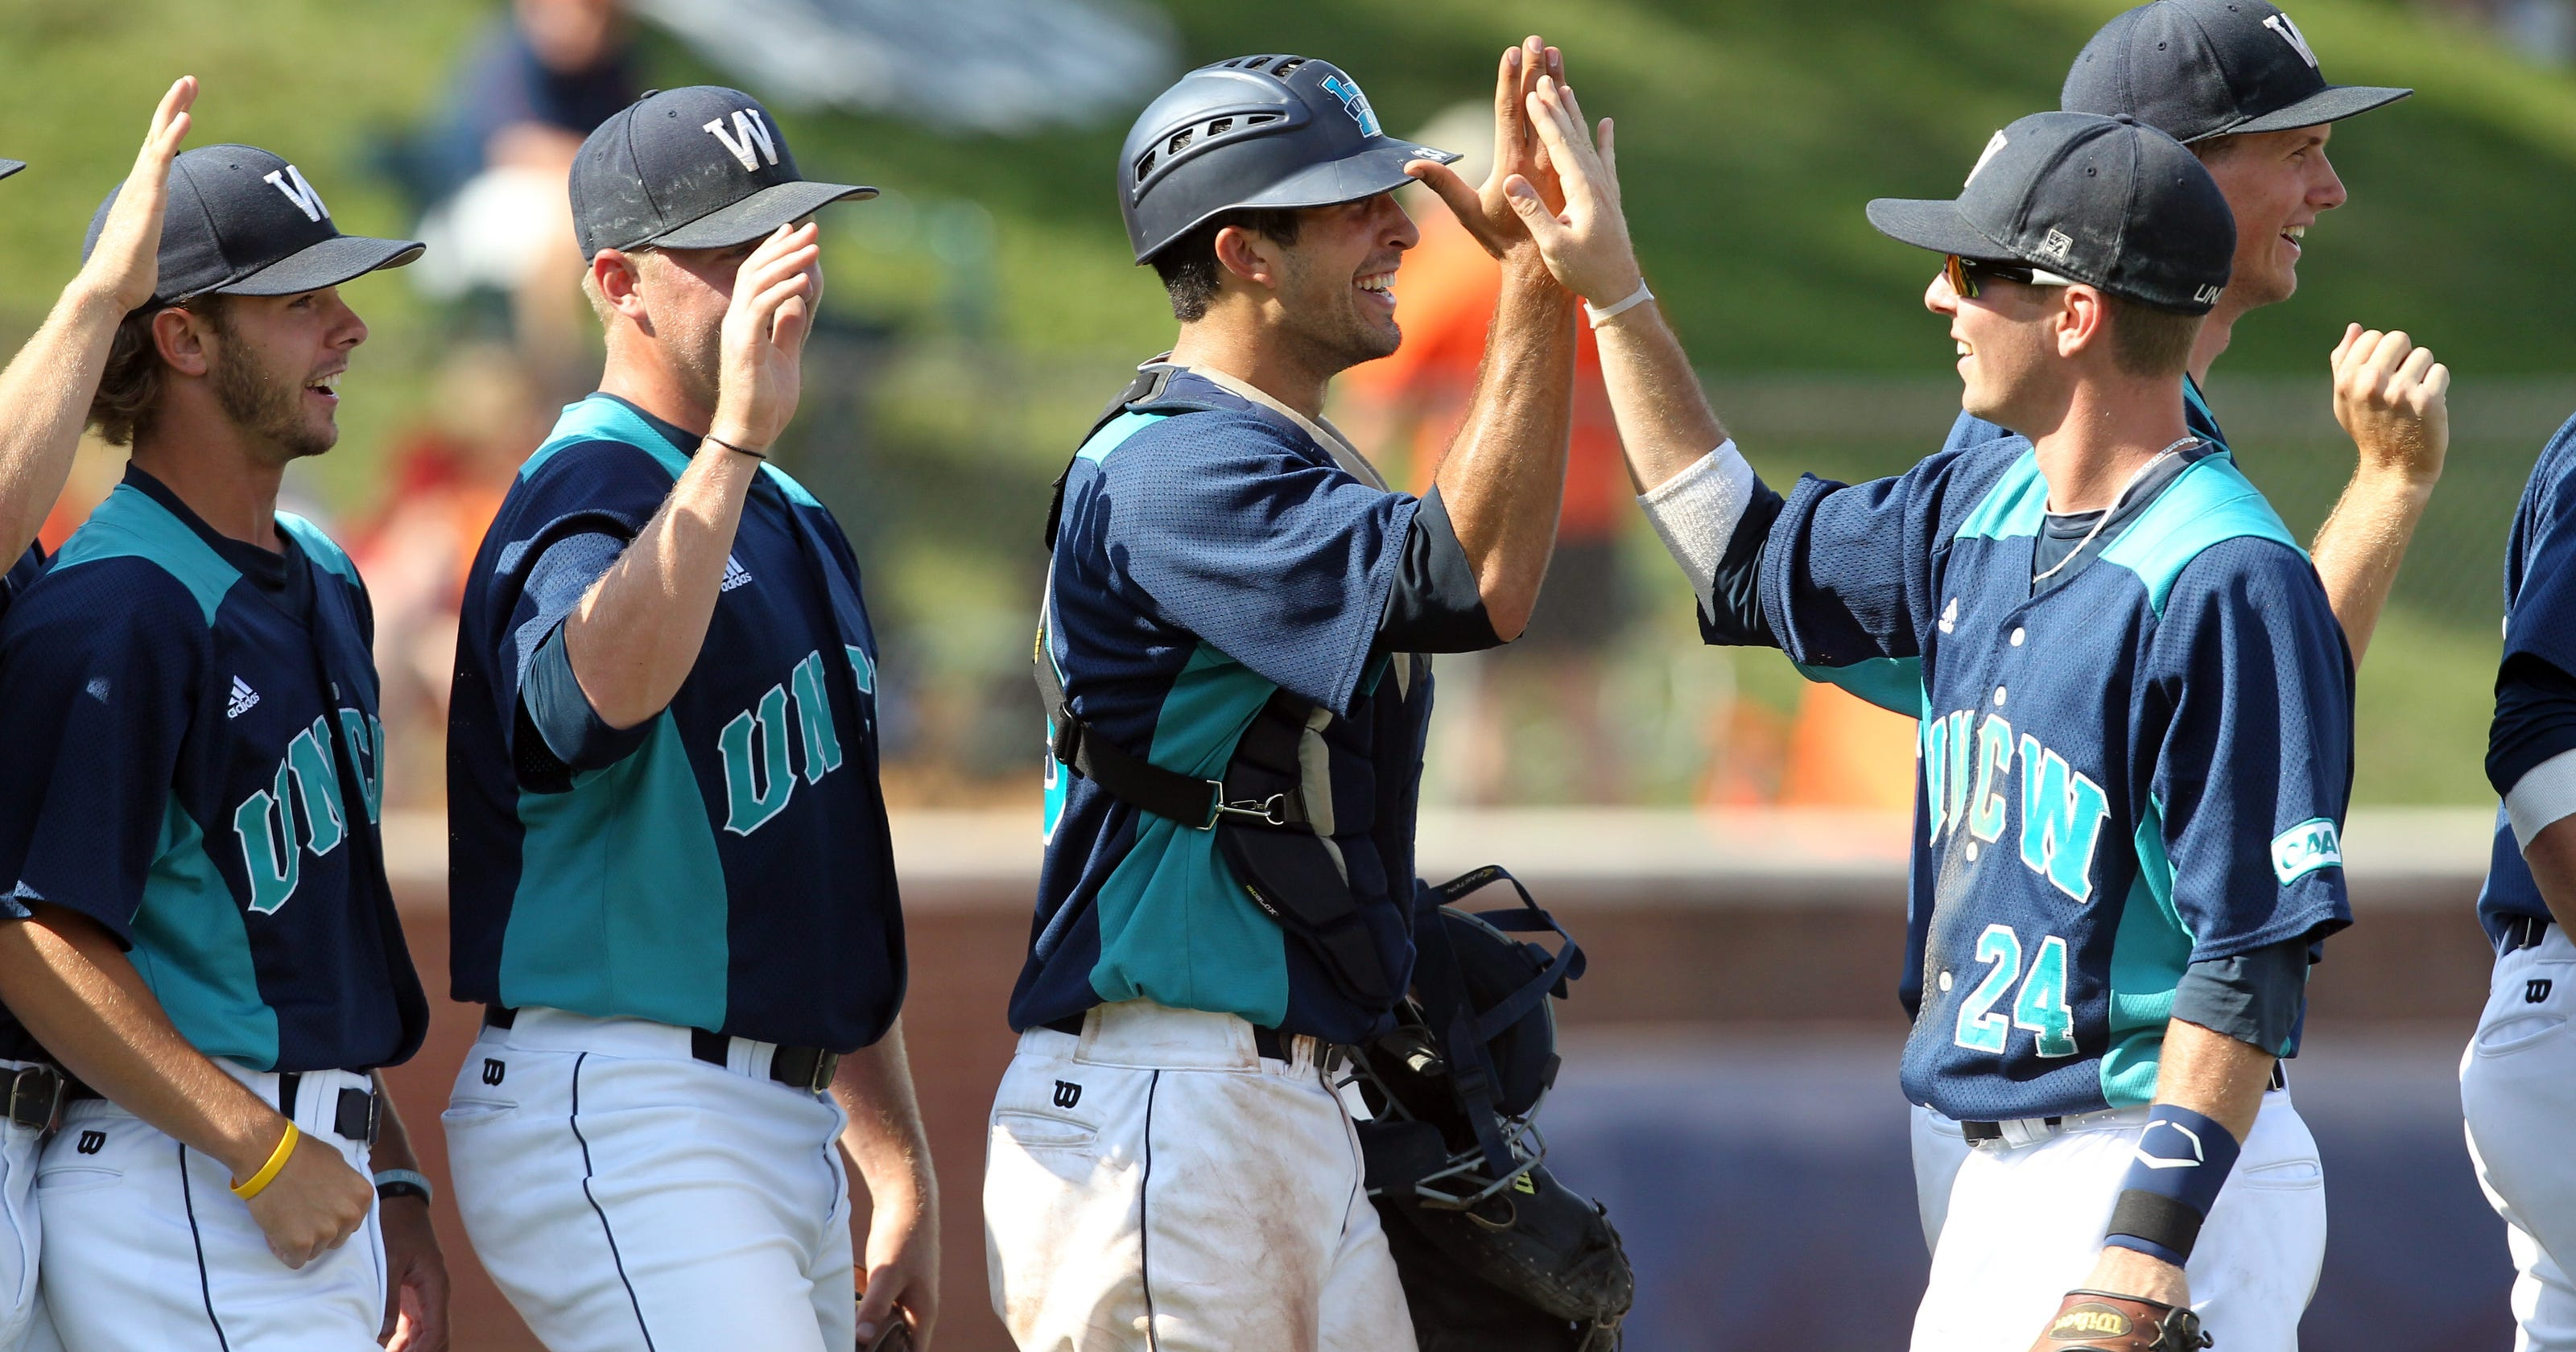 NCAA baseball tournament: UNC Wilmington eliminates Army ...: http://www.usatoday.com/story/sports/college/2013/06/01/ncaa-baseball-tournament-2013-unc-wilmington-army-triple-play/2381083/